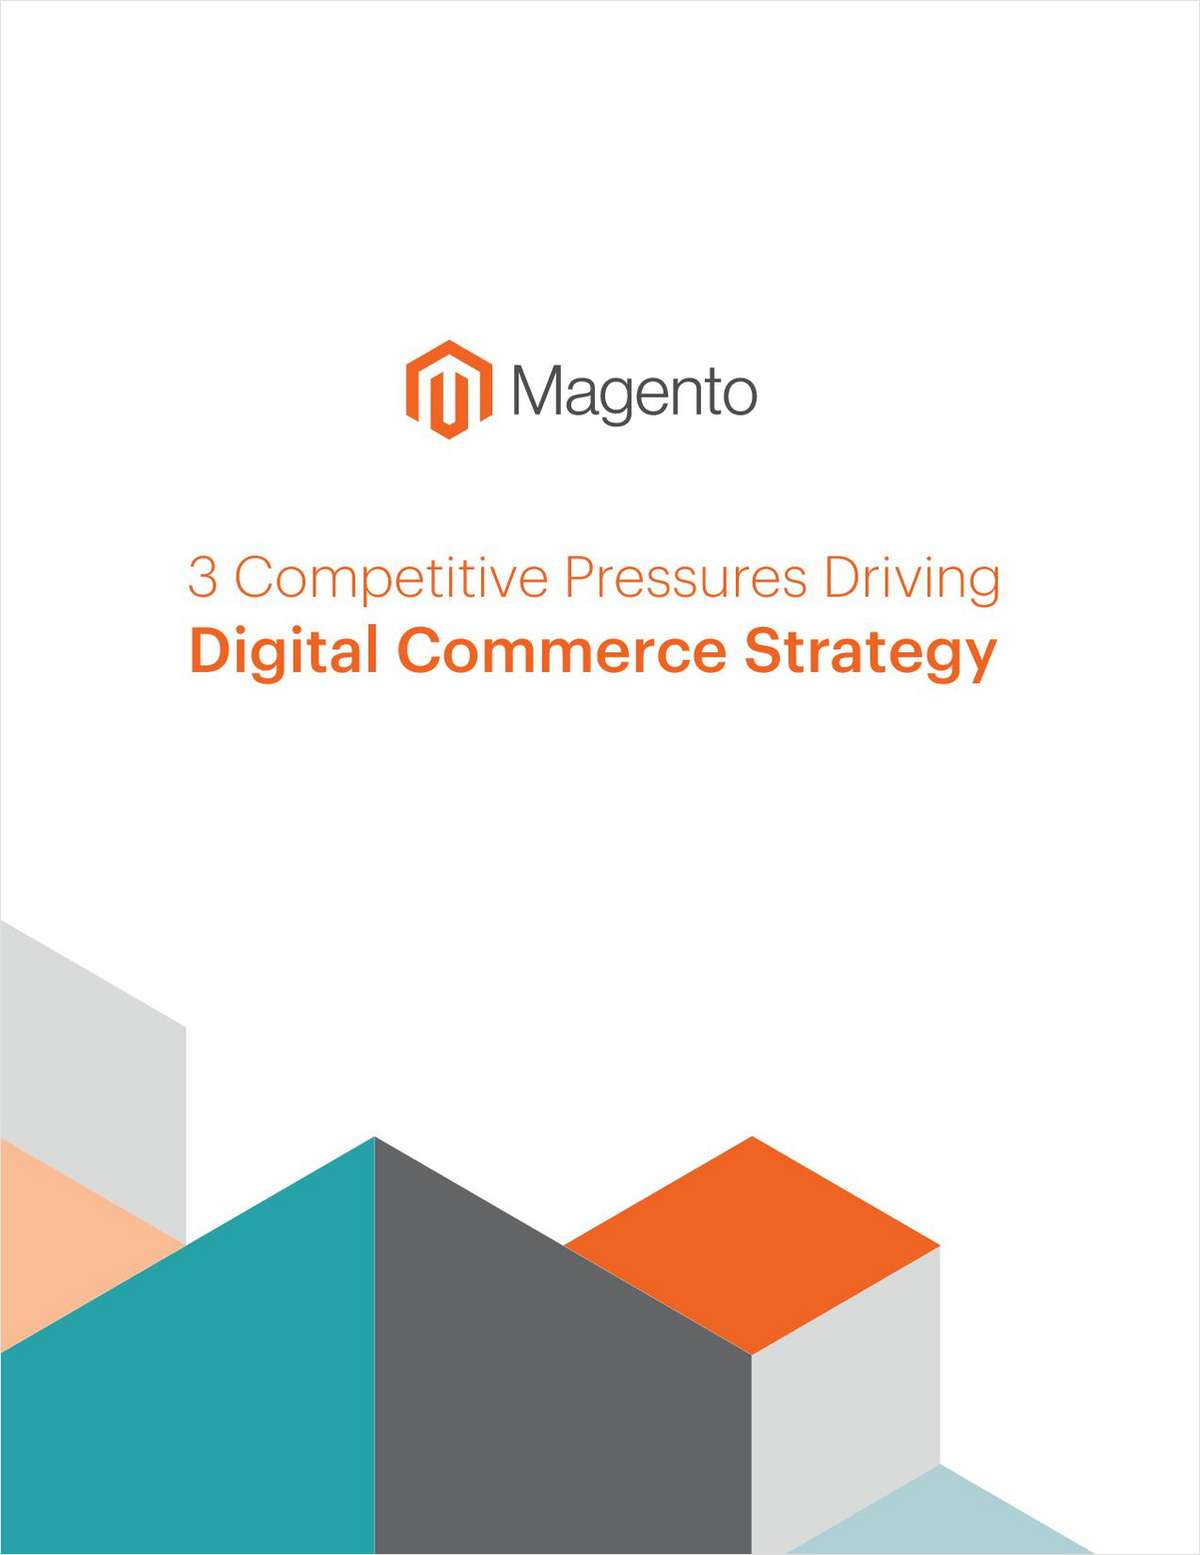 3 Competitive Pressures Driving Digital Commerce Strategy